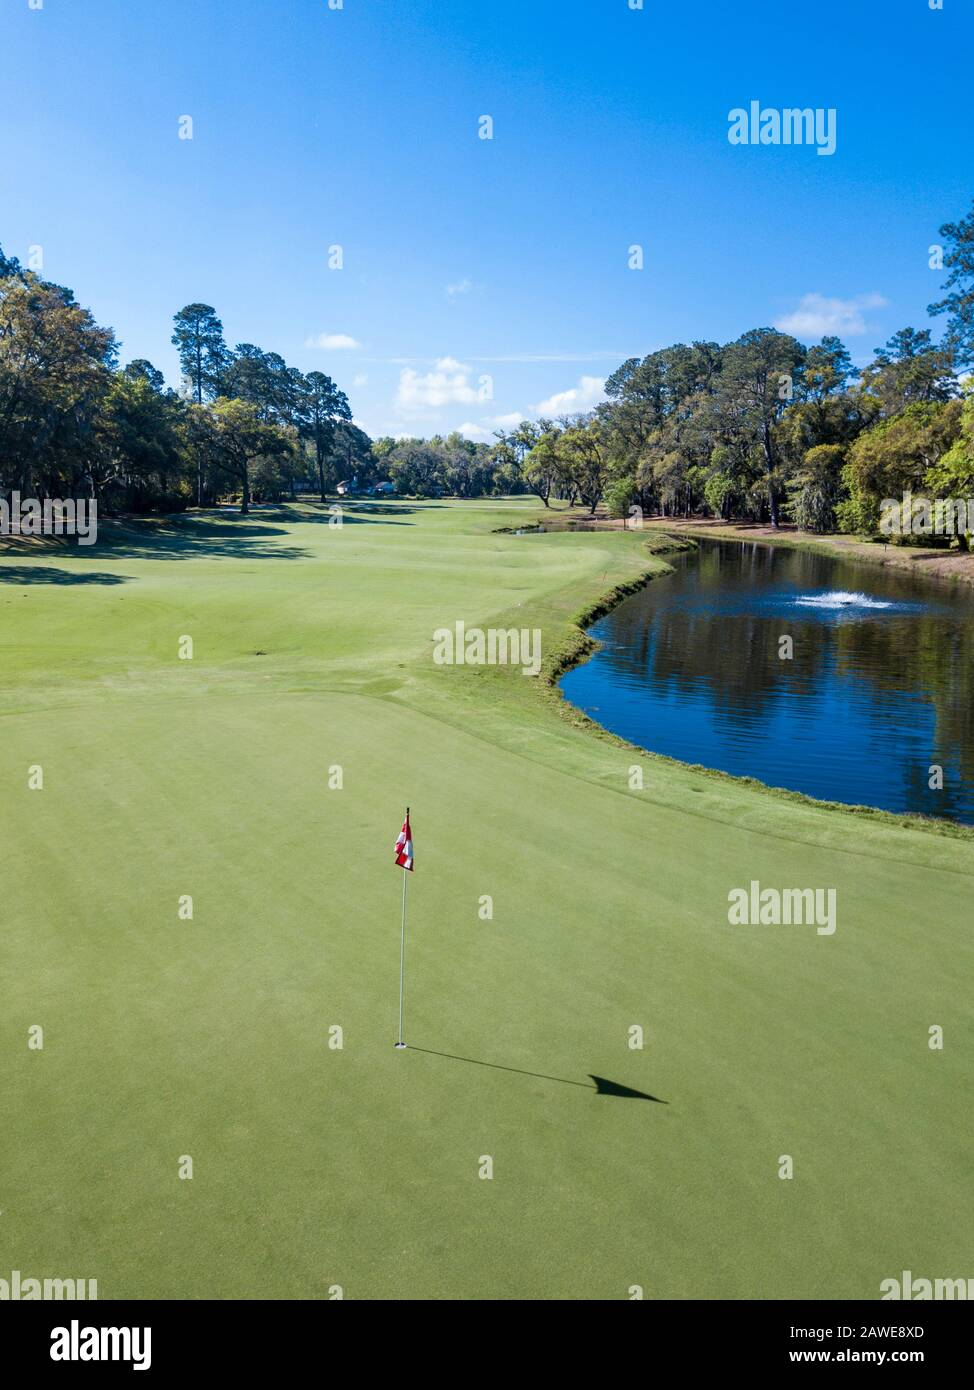 High Angle Shot Of Pin And Hole On Golf Course With Fairway In Background Stock Photo 342677733 Alamy